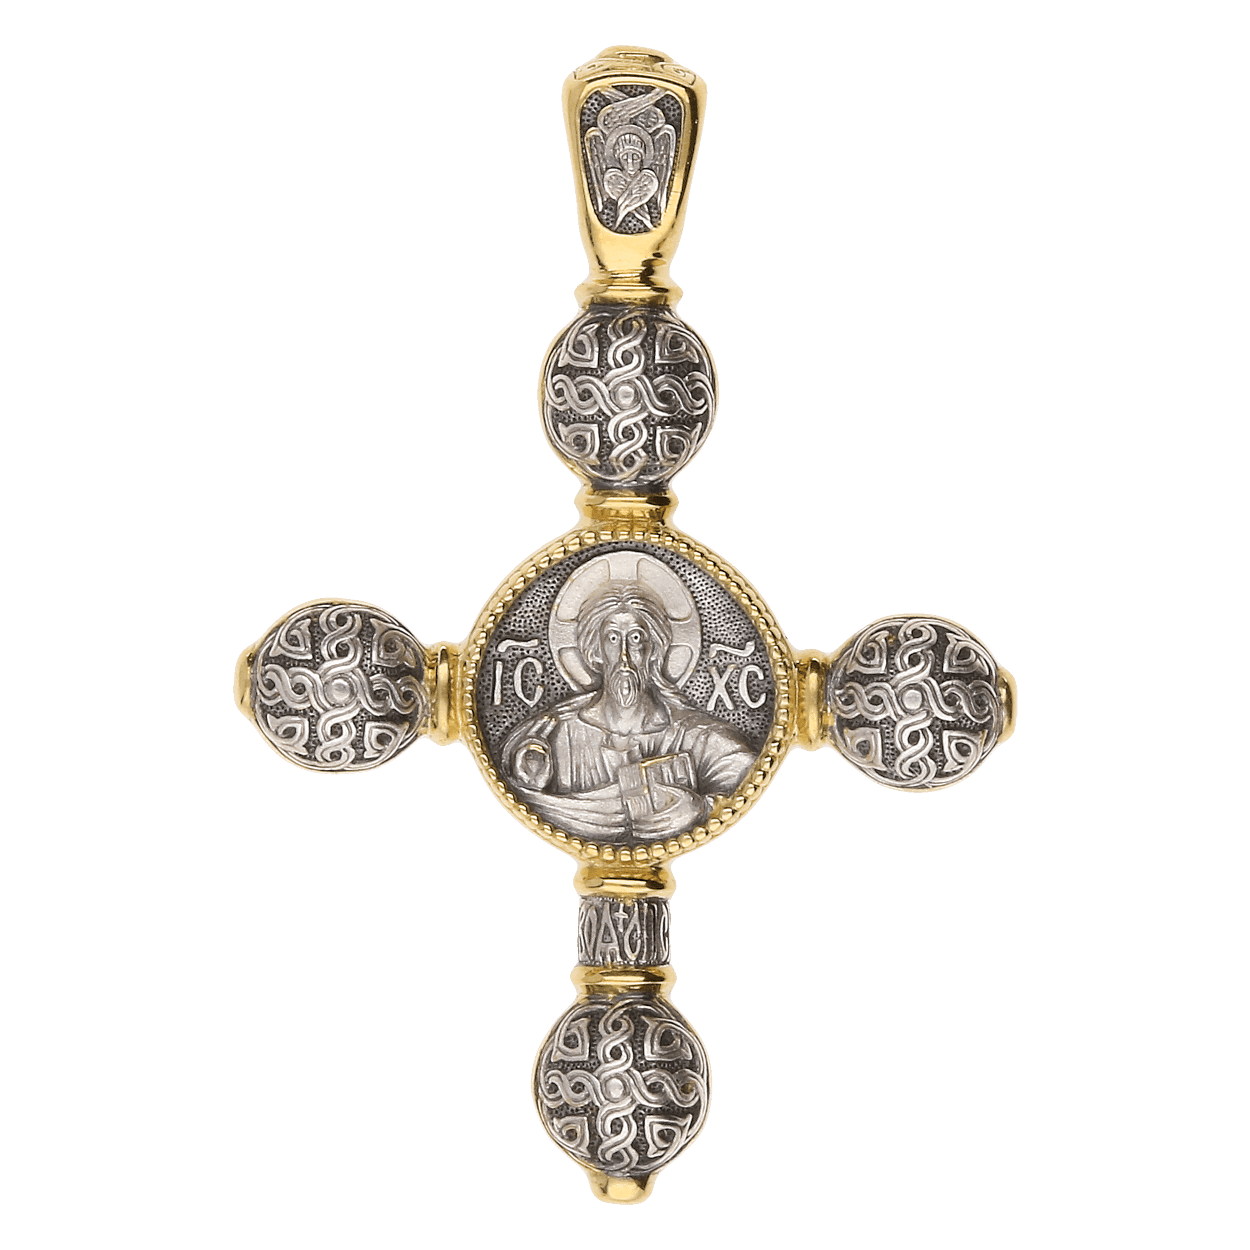 Russian Orthodox silver Cross pendant THE LORD ALMIGHTY THEOTOKOS ASSUNTA, Master Jeweler Fedor